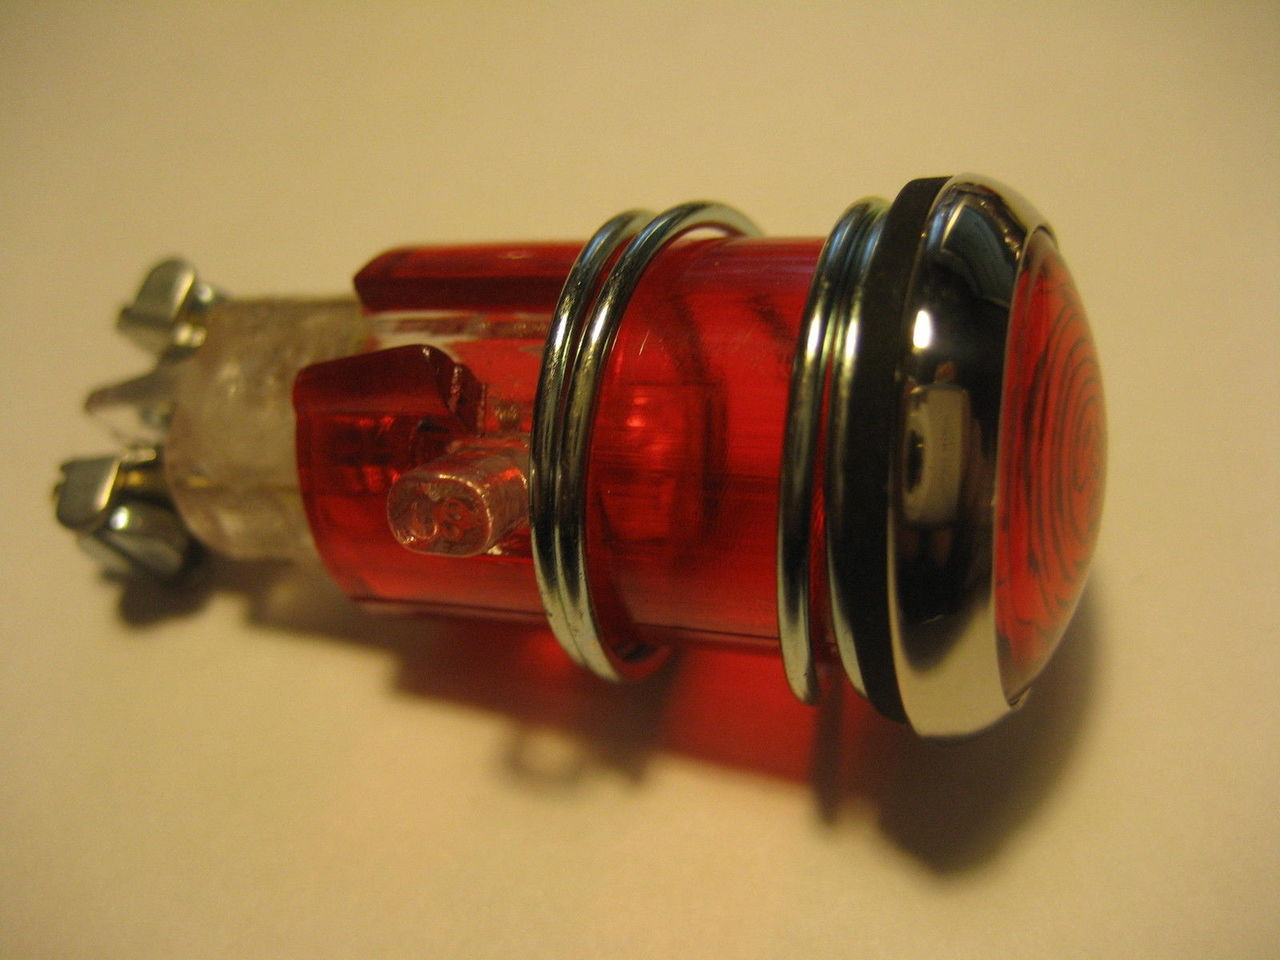 NEW VINTAGE BMW RED INDICATOR LIGHT FOR HEADLIGHT FITS MANY MODELS - 63 12 2 980 104 - 1